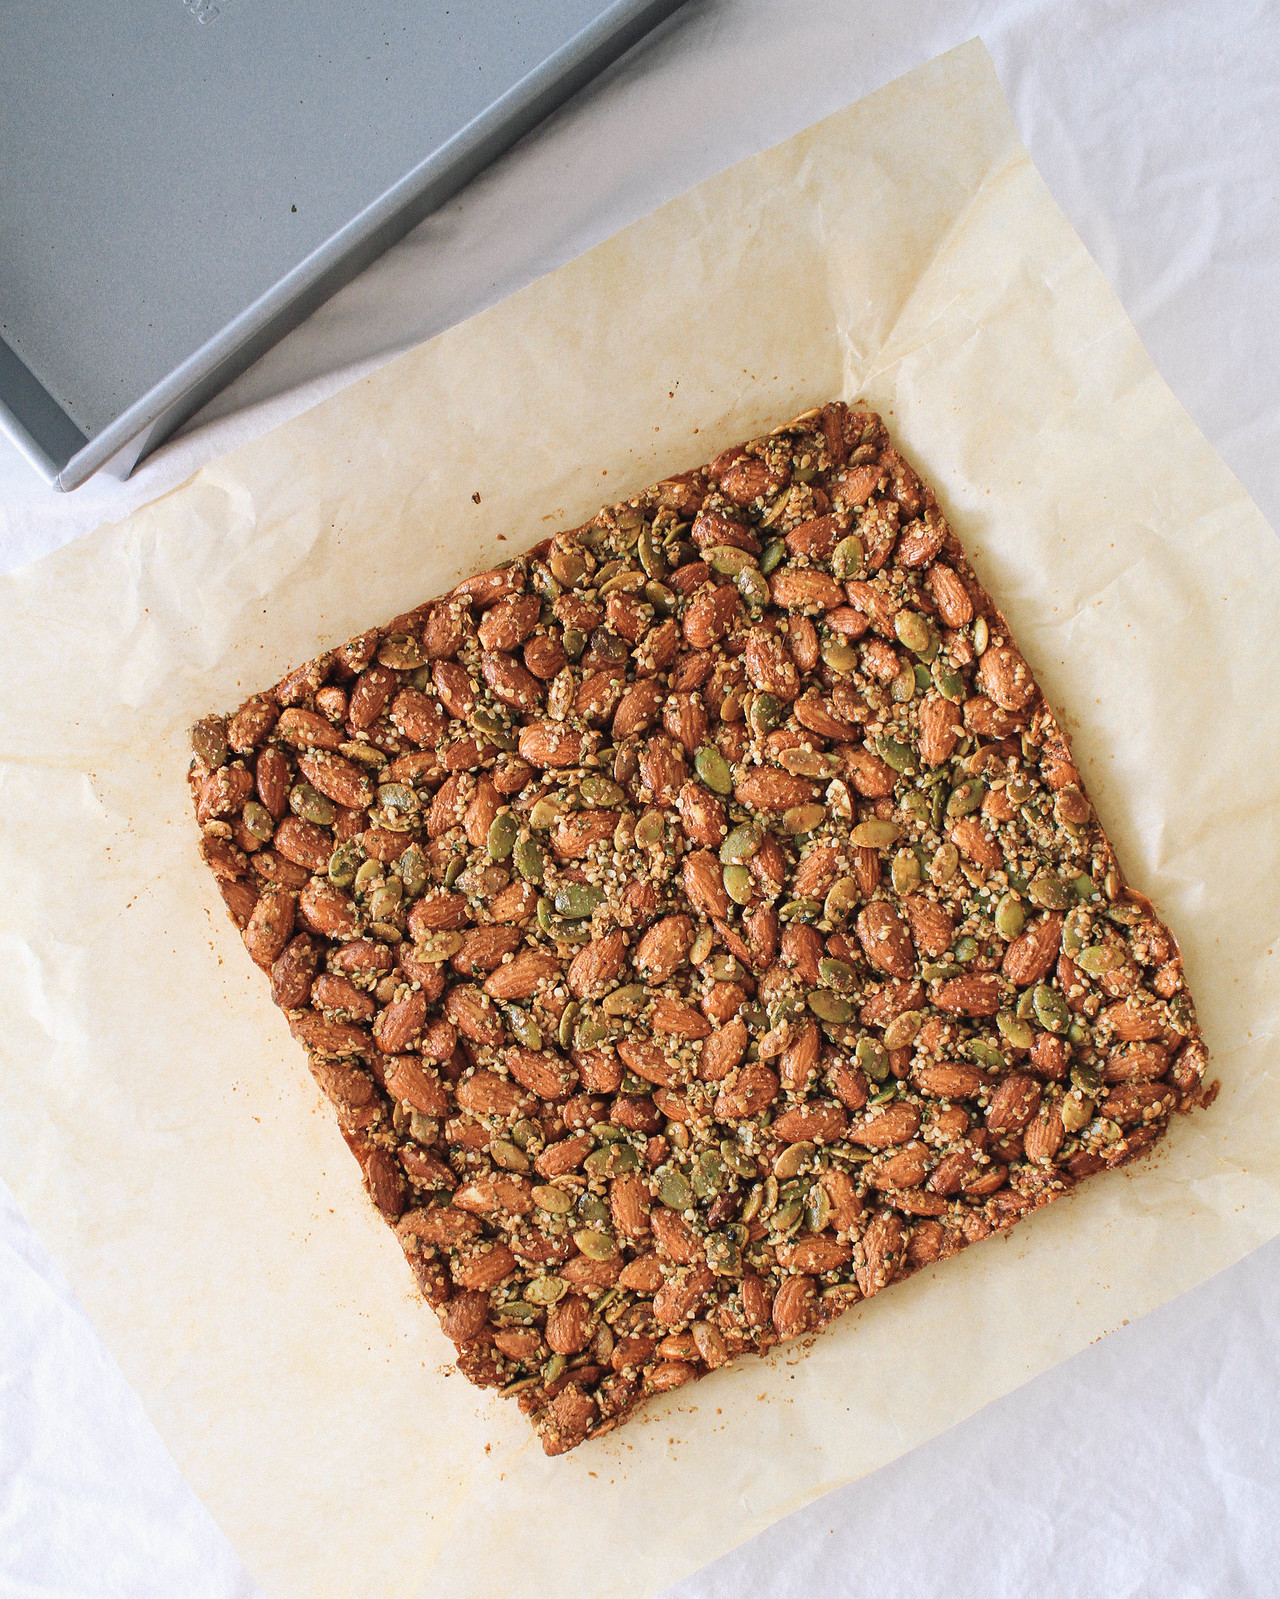 Spicy Nut & Seed Protein Bar